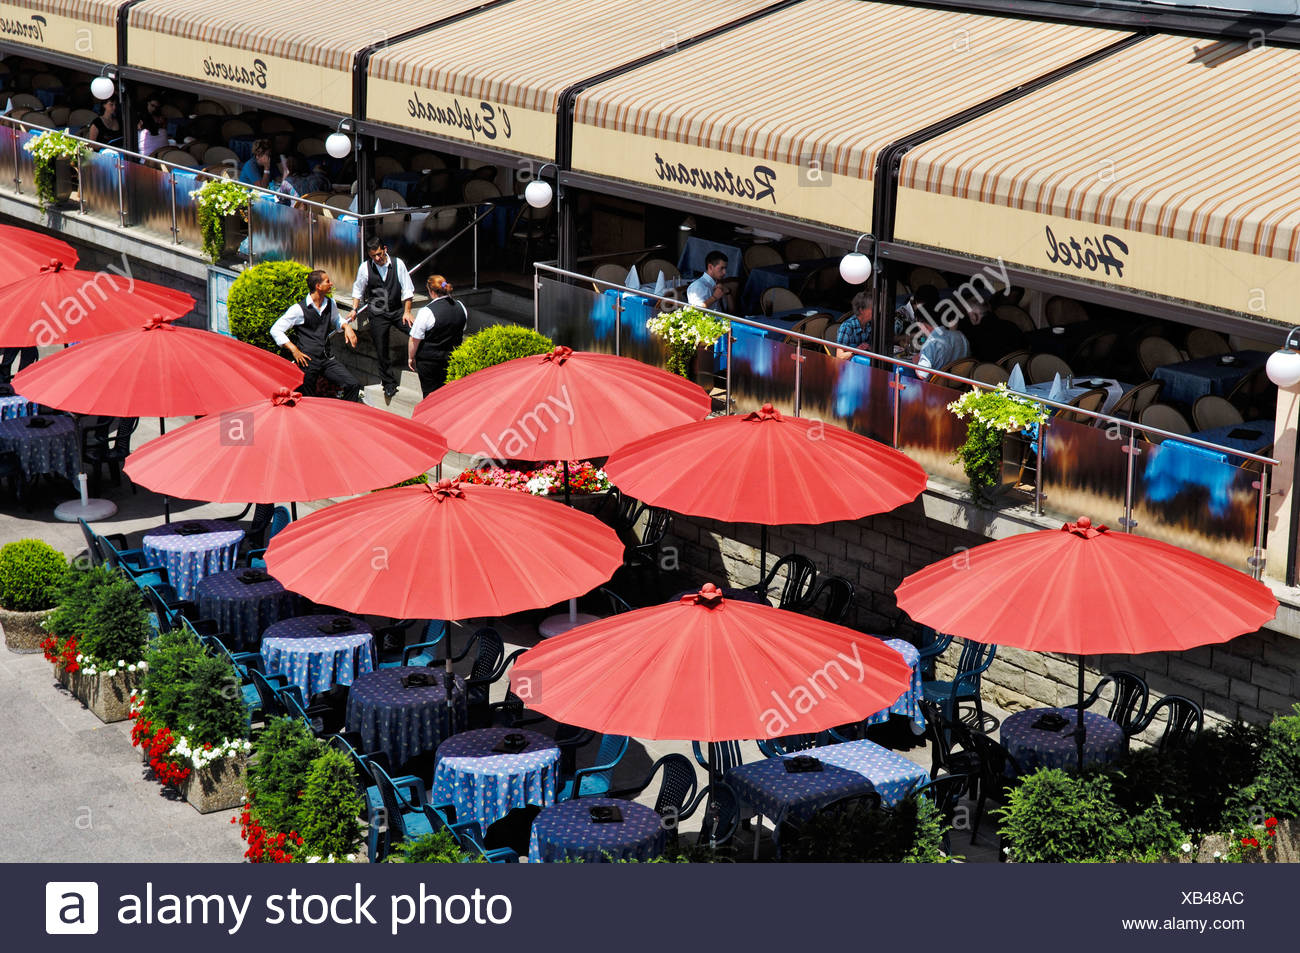 Guests in a restaurant under parasols, Luxemburg - Stock Image